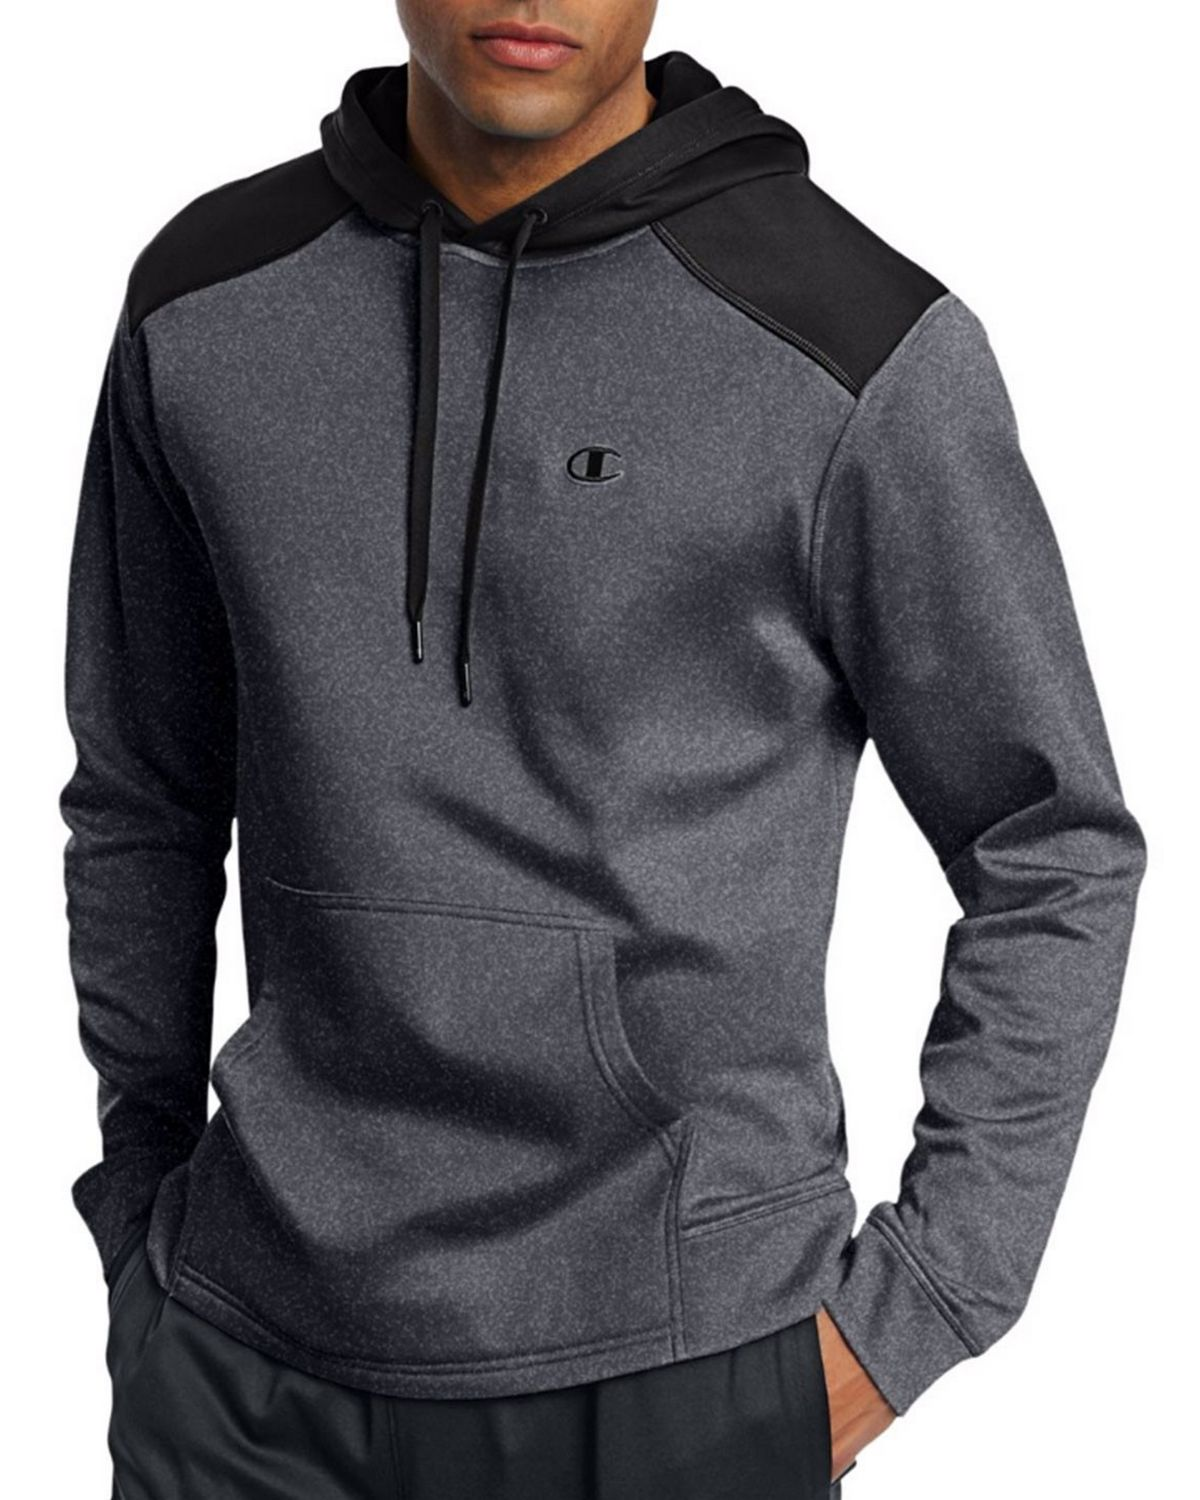 Champion S0875 Tech Fleece Pullover Hoodie - Granite Heather/Black - S S0875